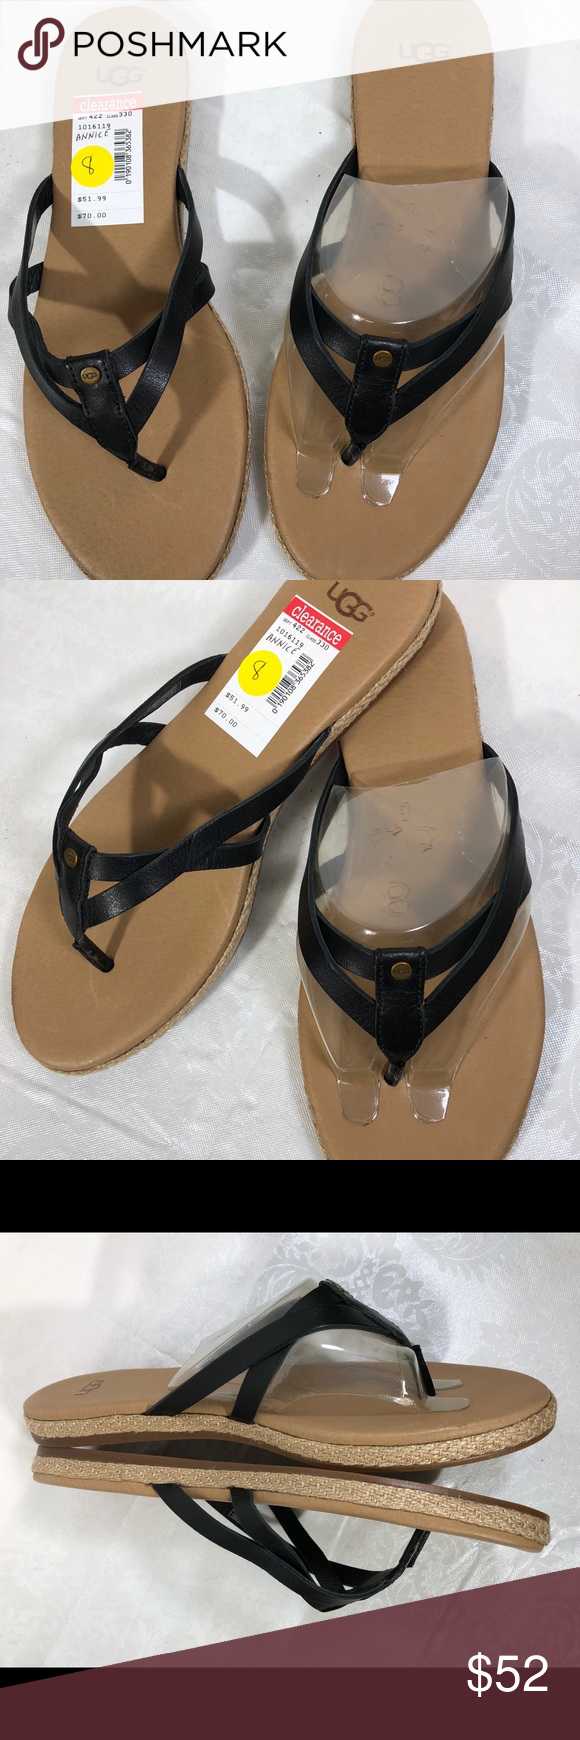 291481eea3e UGG ANNICE LEATHER JUTE SANDALS Black SIZE 7 NWT